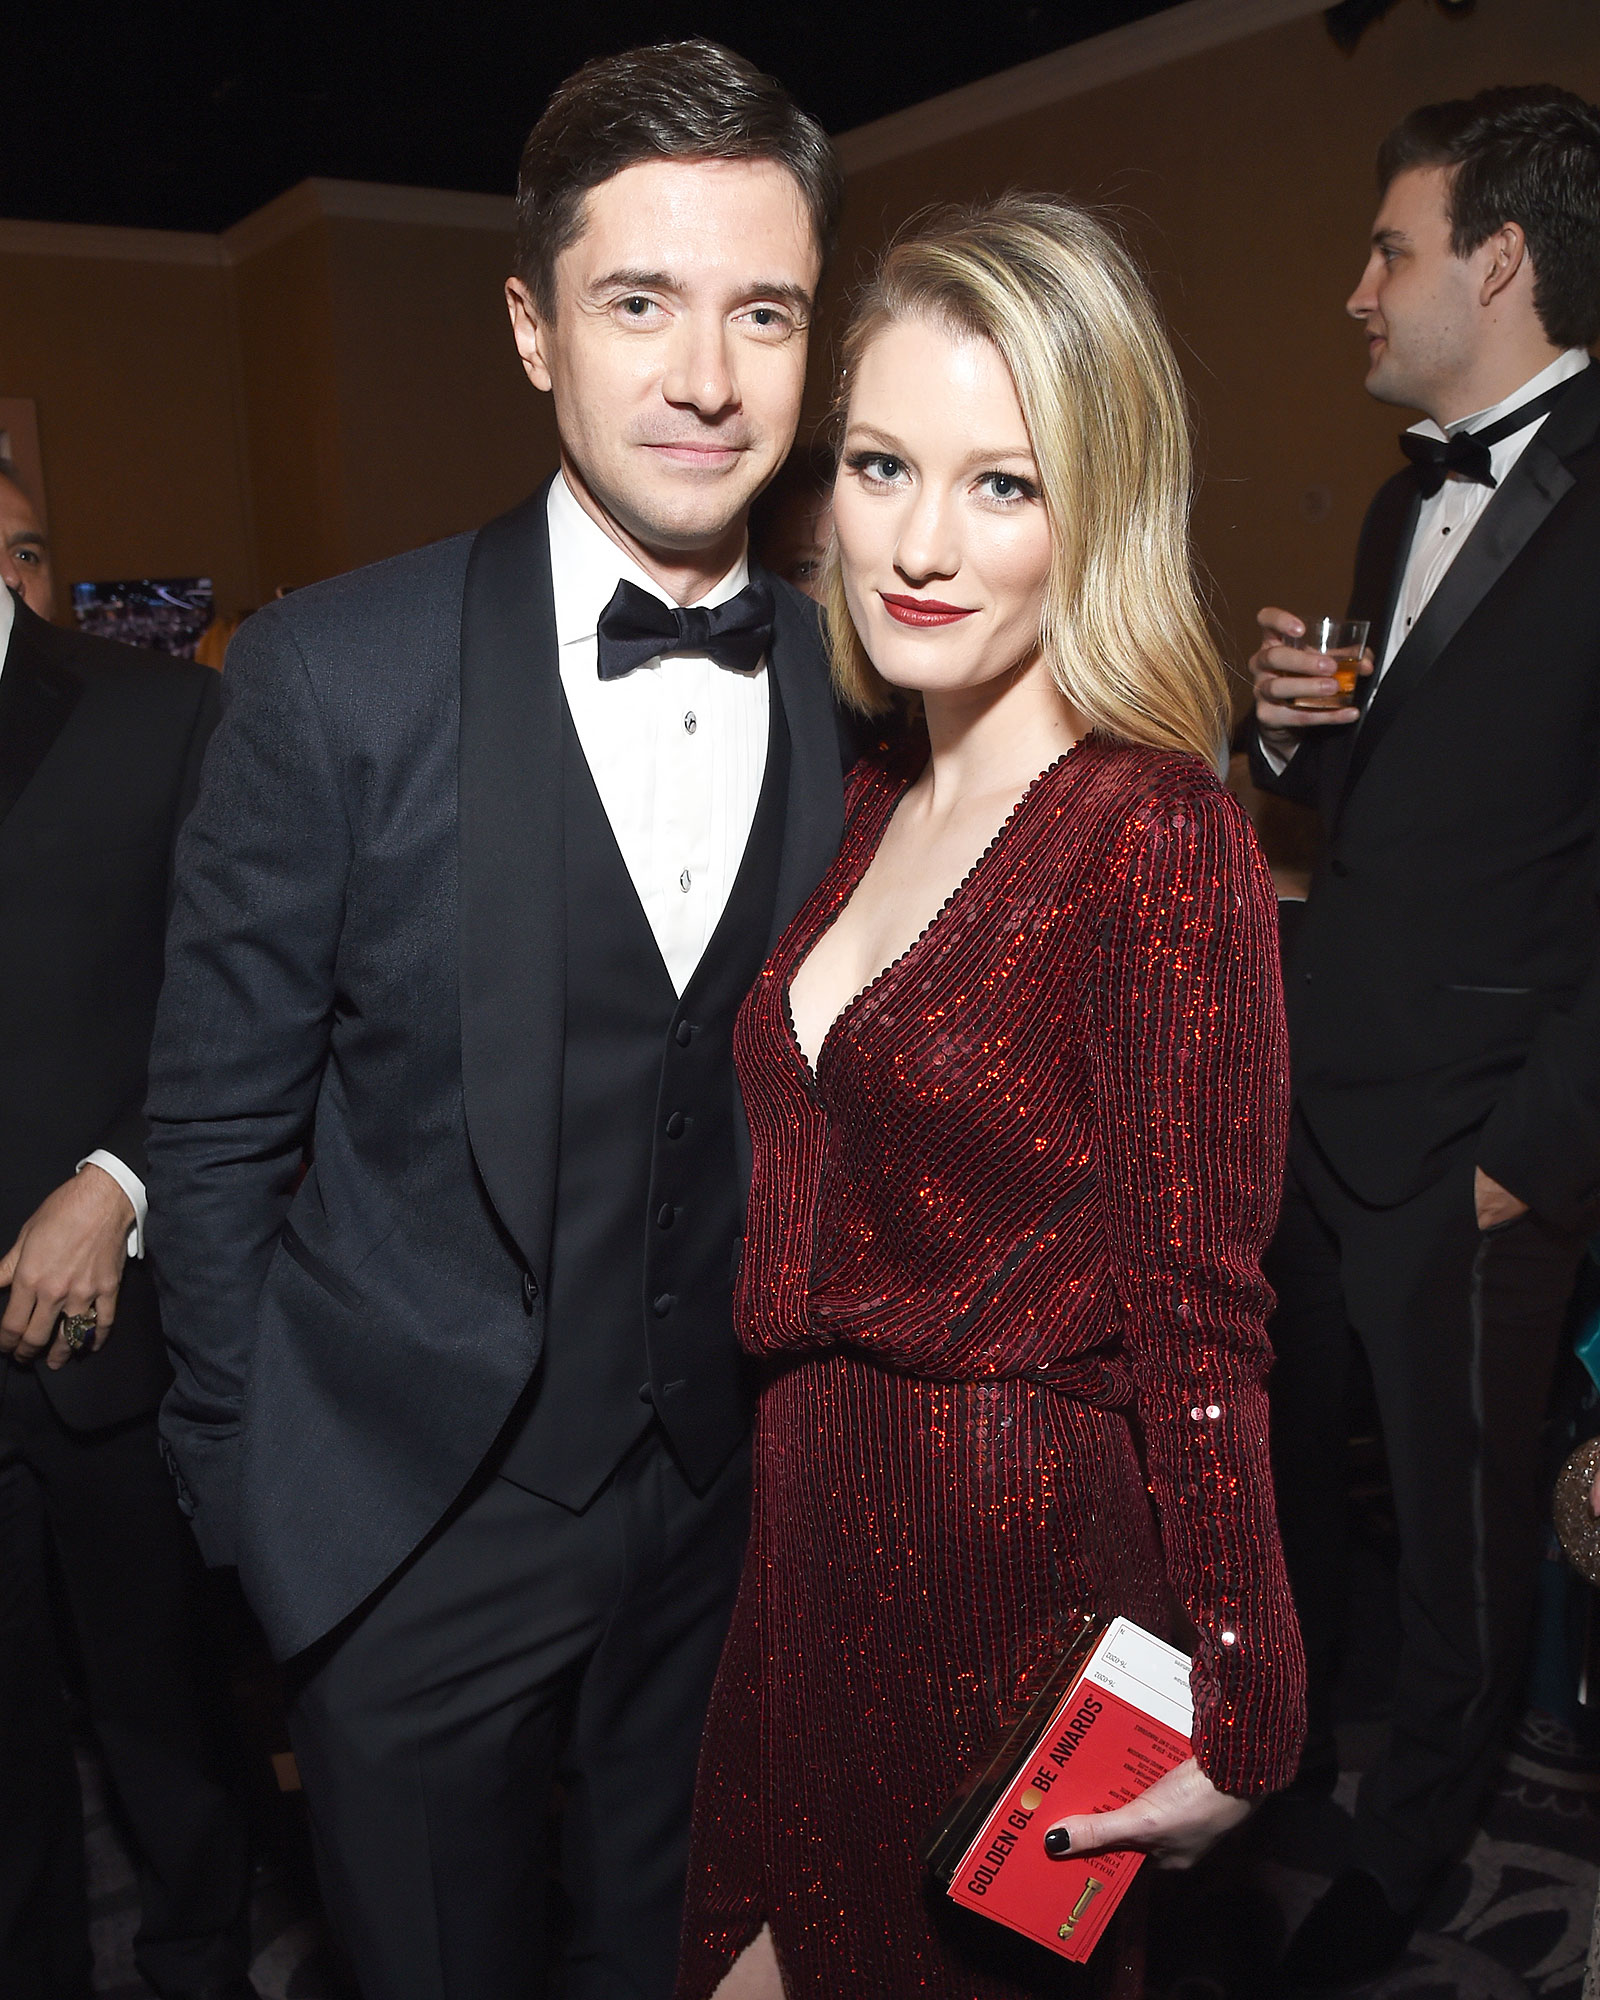 Inside Golden Globes 2019 Topher Grace Ashley Hinshaw - Topher Grace and Ashley Hinshaw enjoyed a rare outing with the stars. Photo Editor: Liz Abts